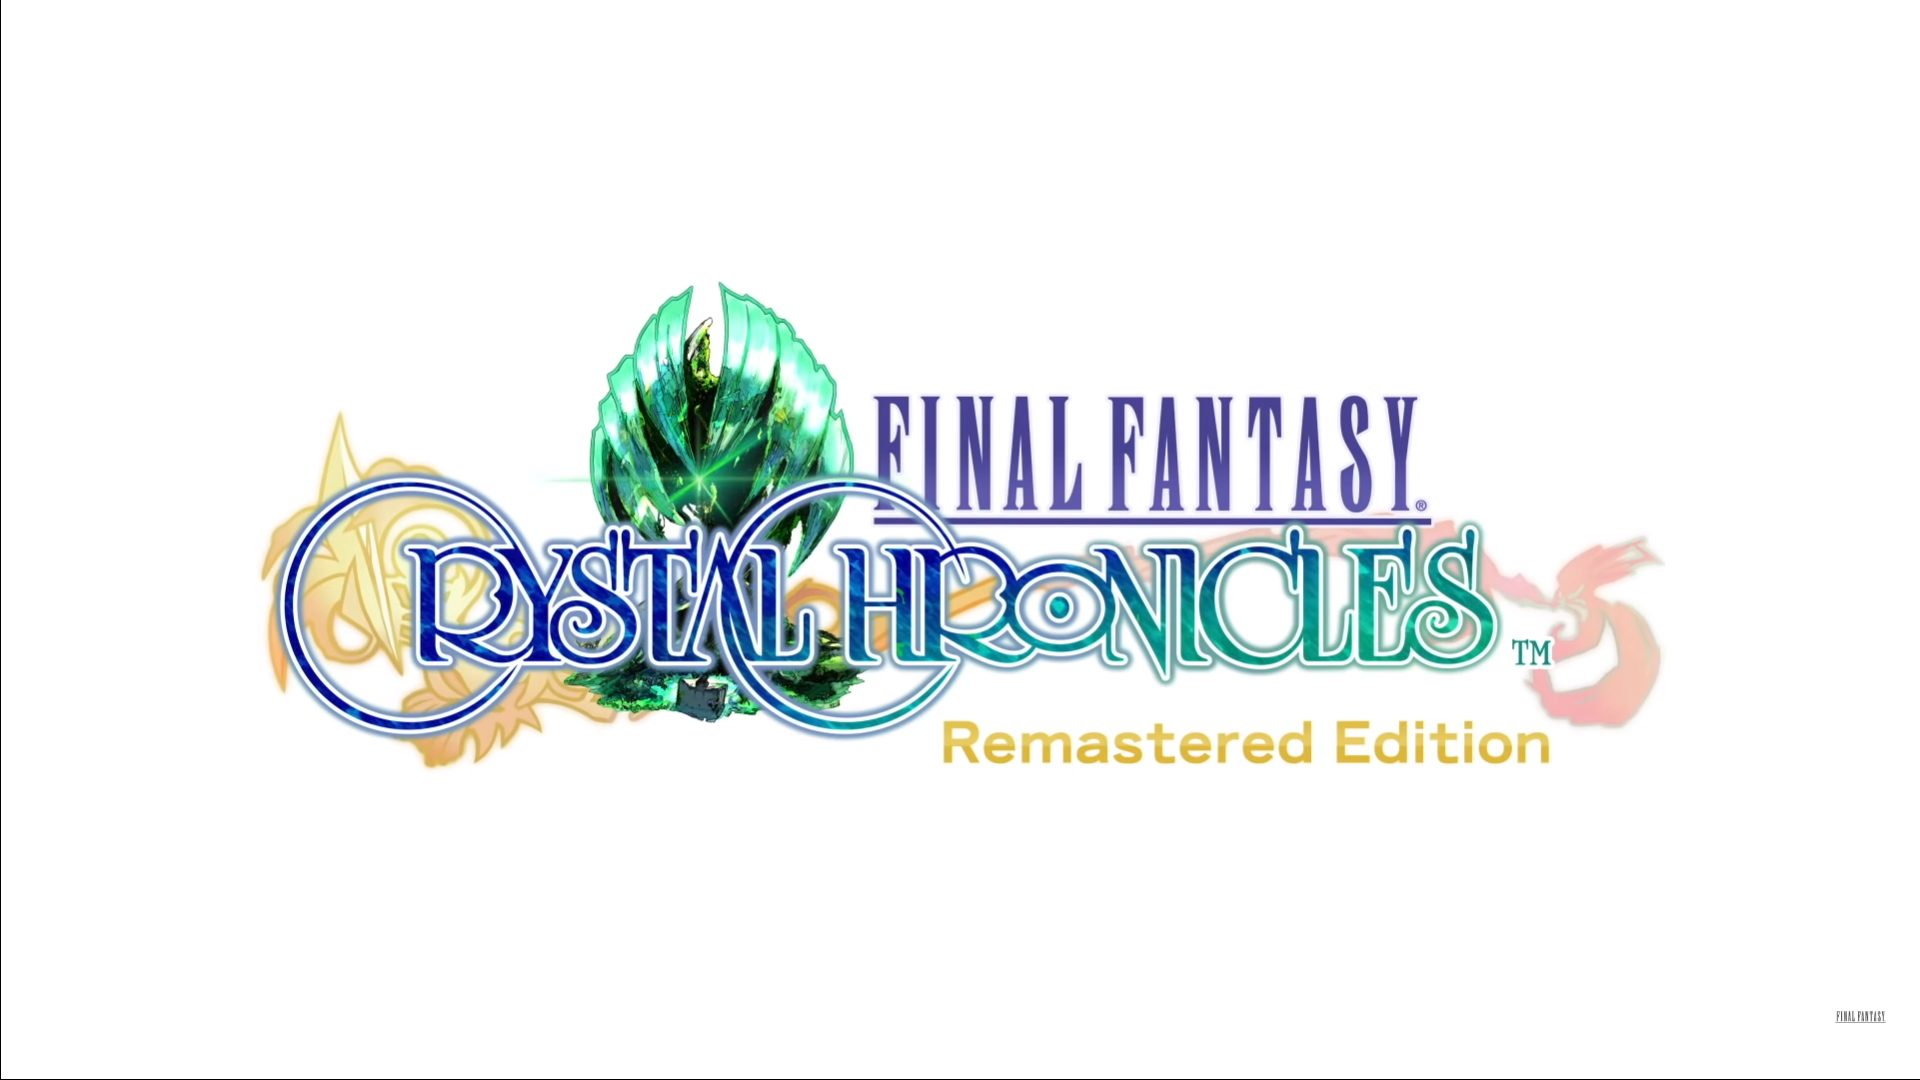 Ya tenemos fecha para Final Fantasy Crystal Chronicles Remastered Edition: 23 de enero